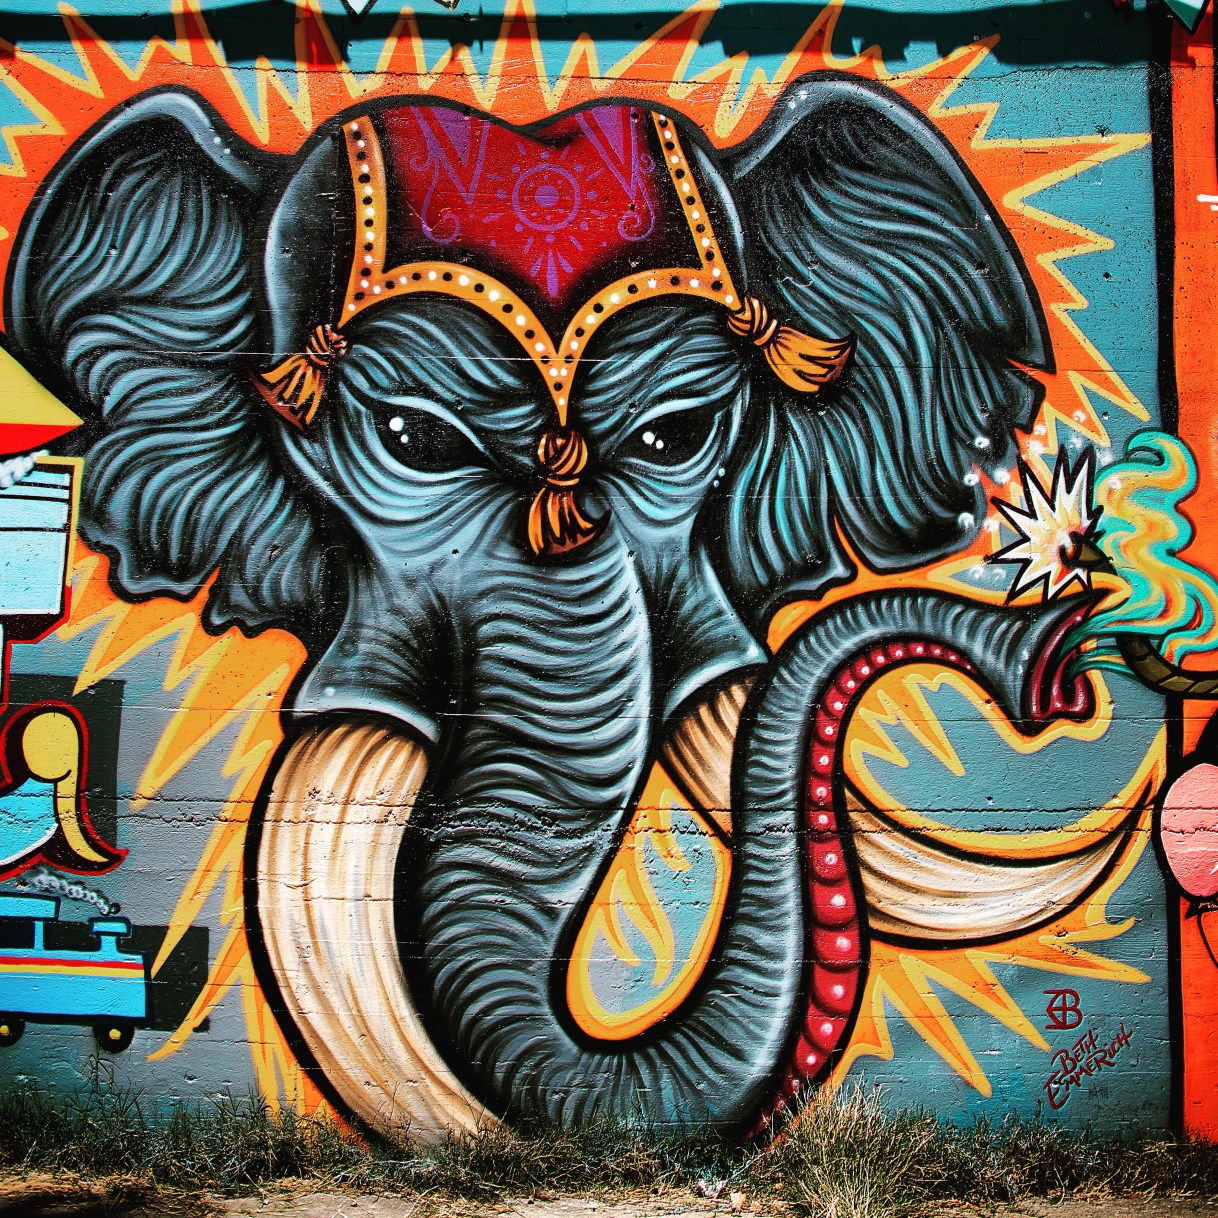 Elephant by Beth Emmerich, 23rd and S Street Alley